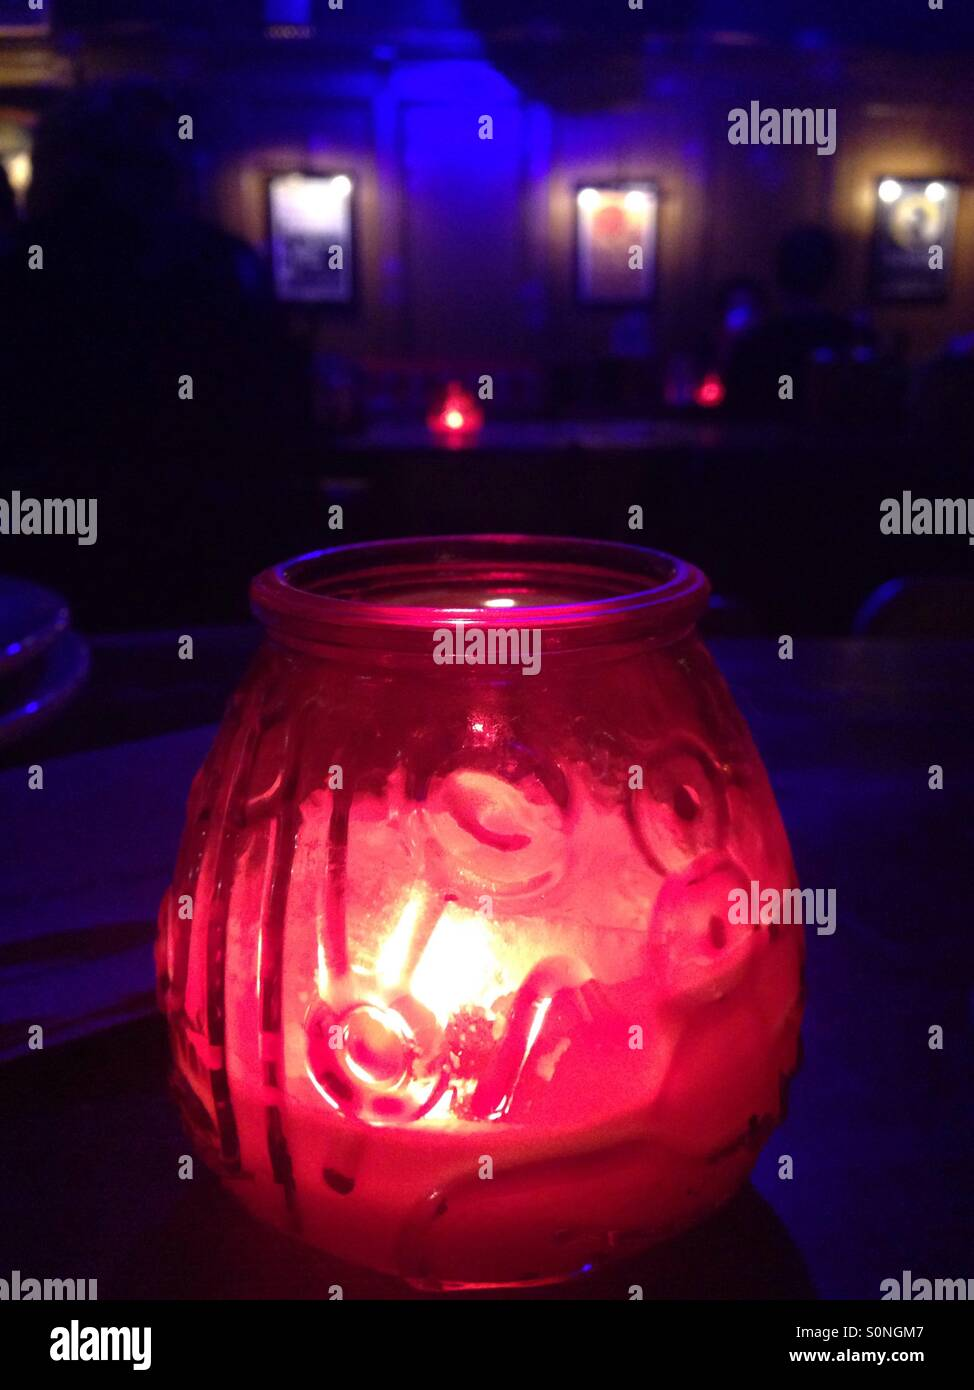 Candlelight darkness - Stock Image